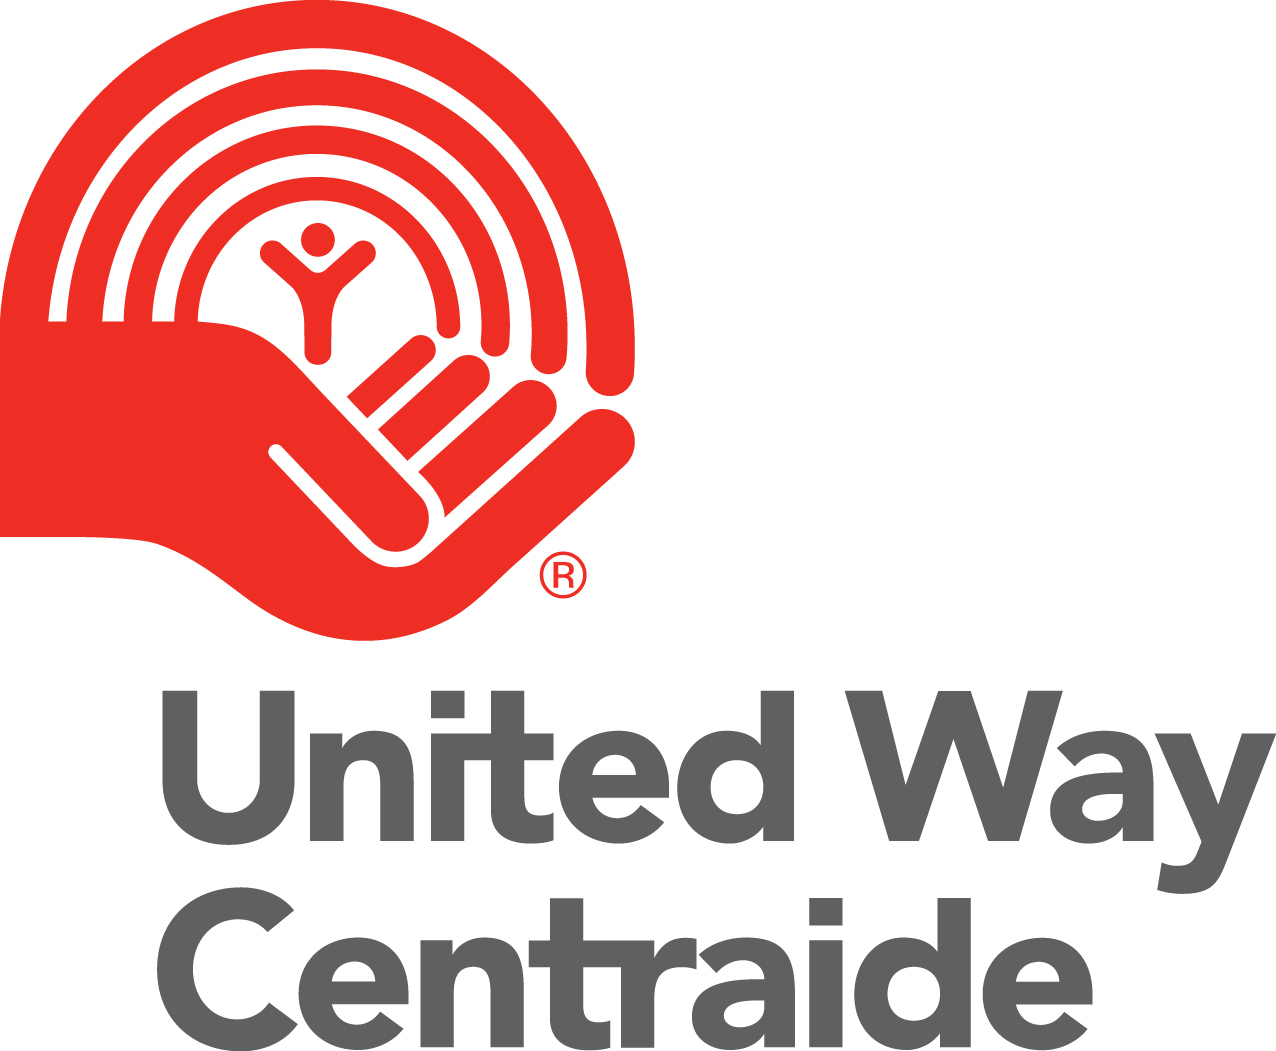 Centraide – United Way